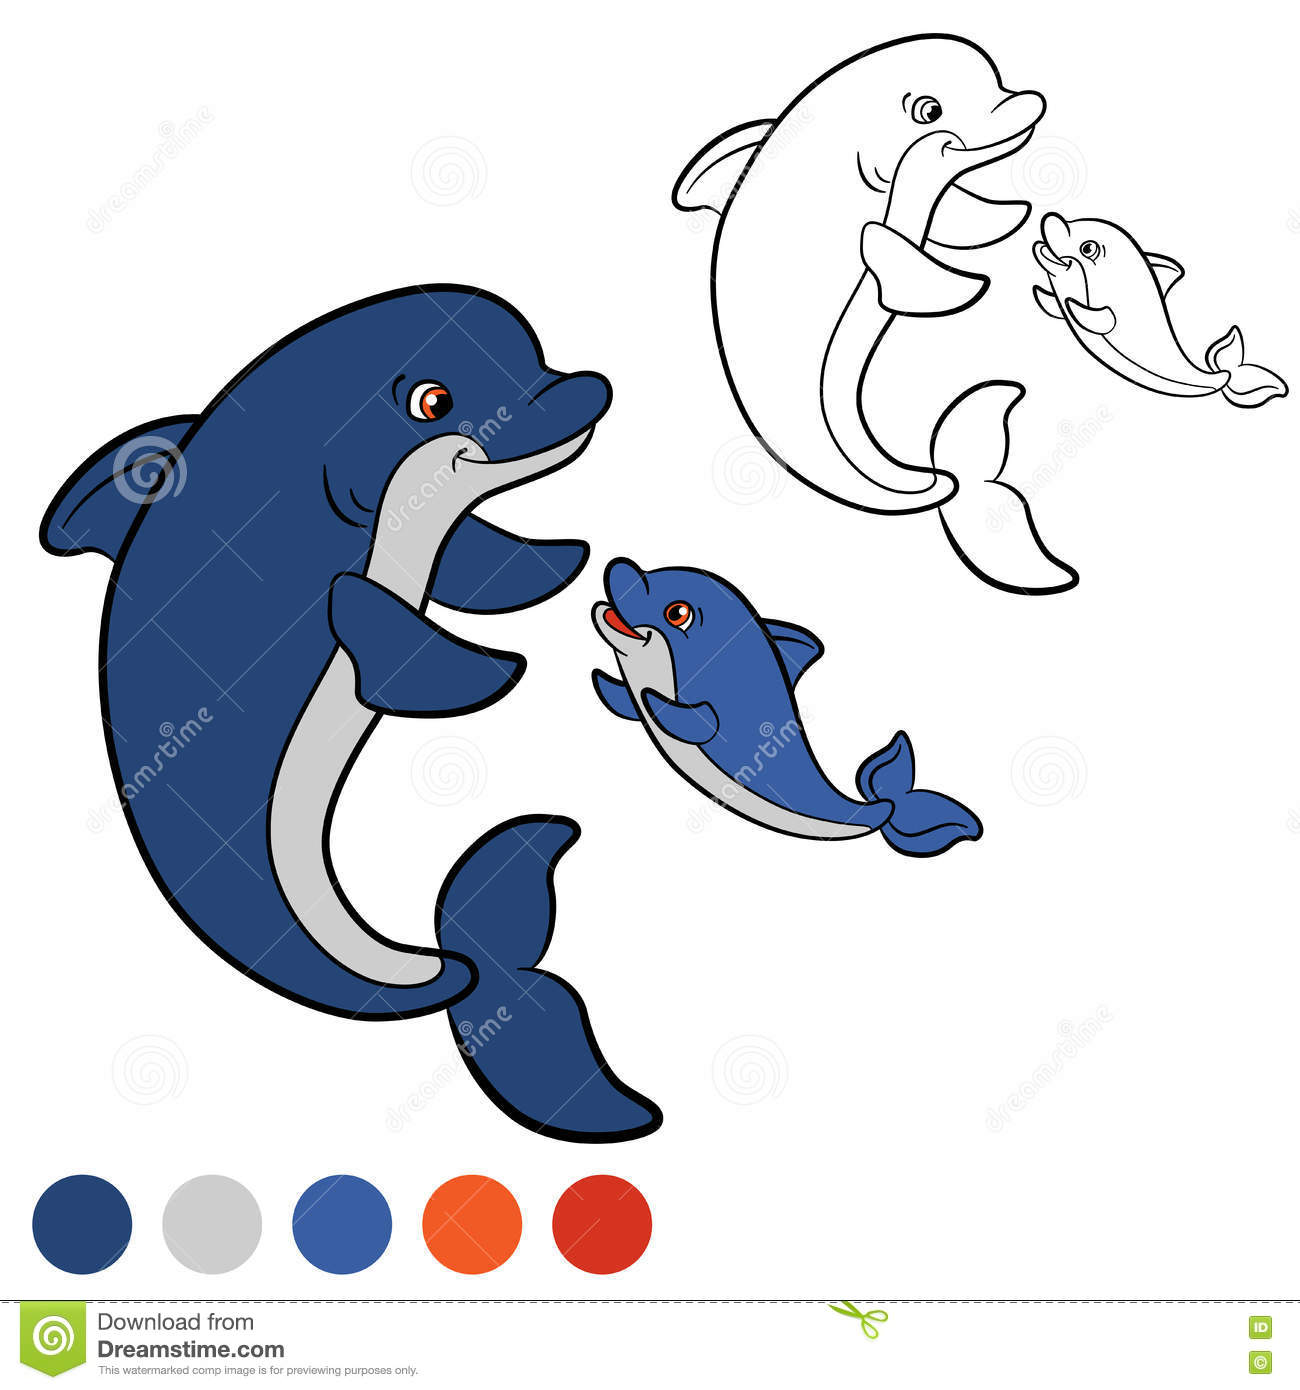 Coloring Page Color Me Dolphin Mother Swims With Her Little Cute Baby They Are Happy